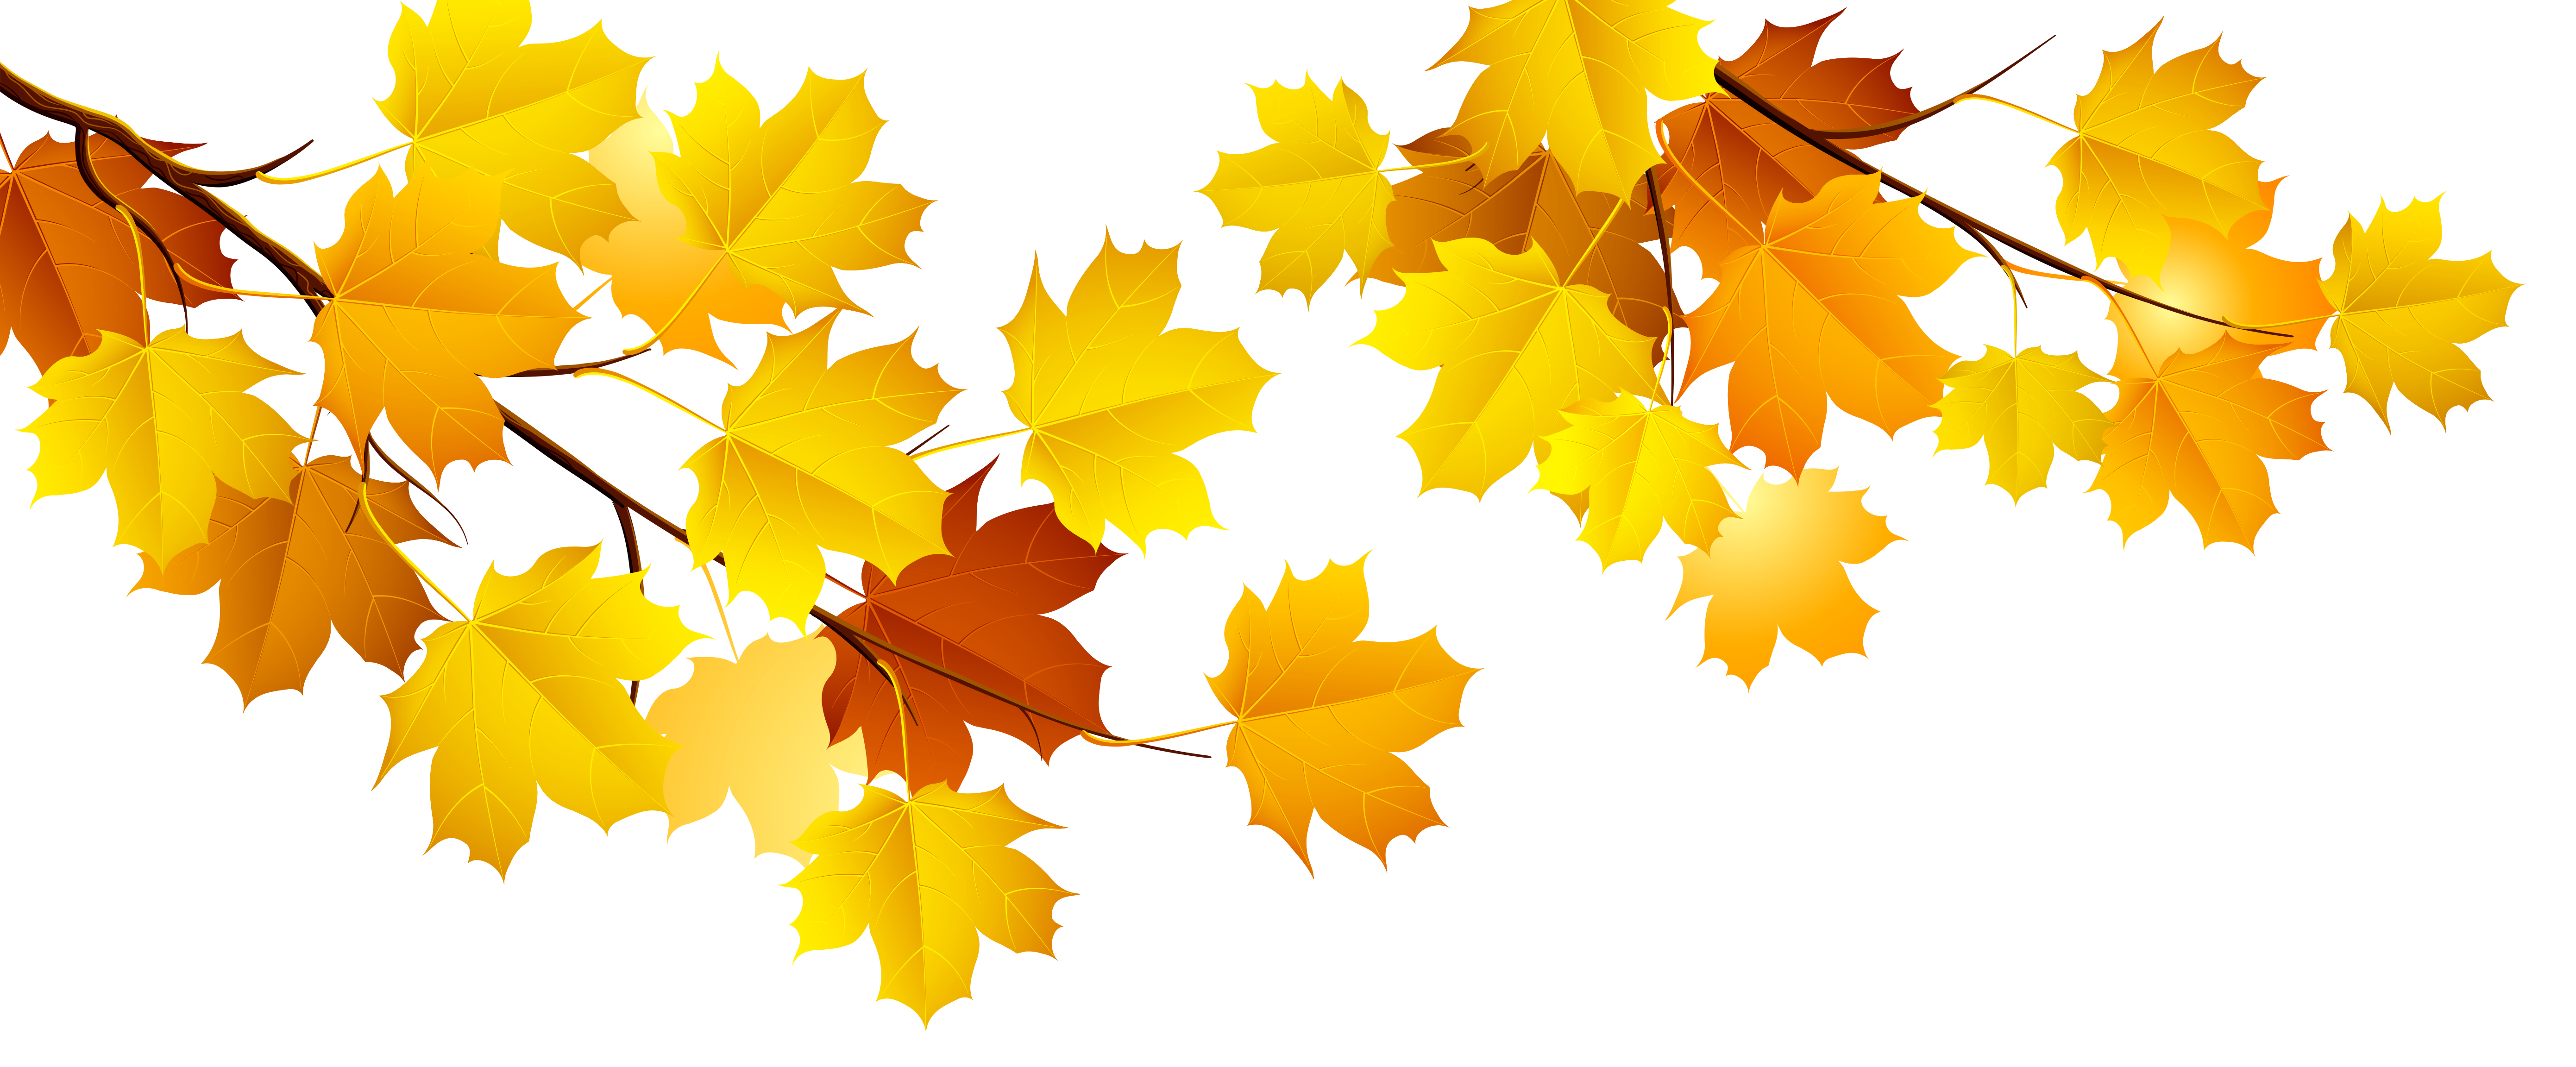 picture transparent Branch png gallery yopriceville. Maple clipart tree autumn.